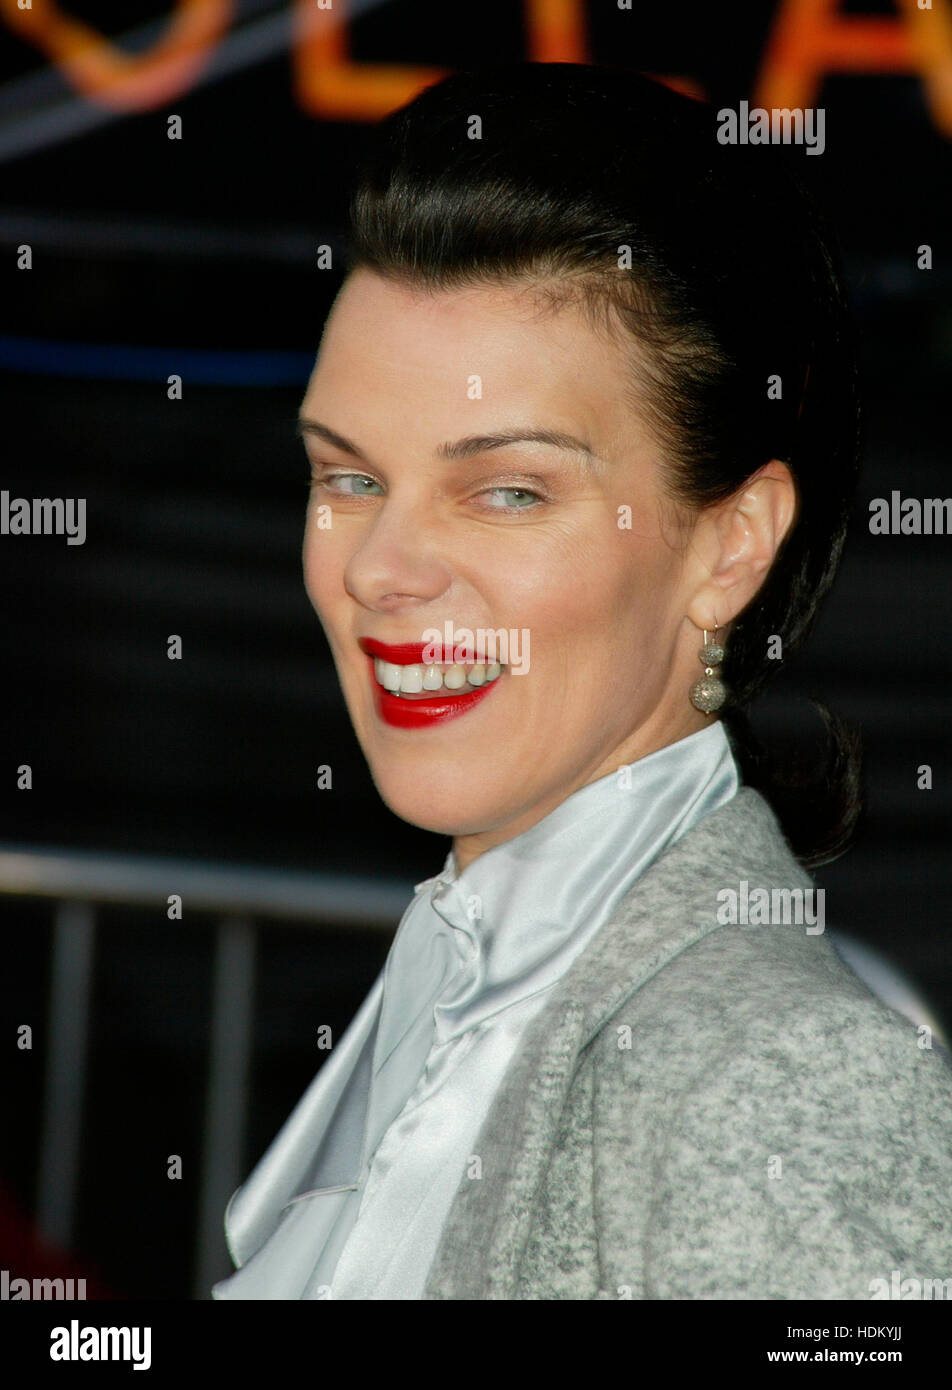 Debi mazar at the premiere for the film collateral in los angeles on